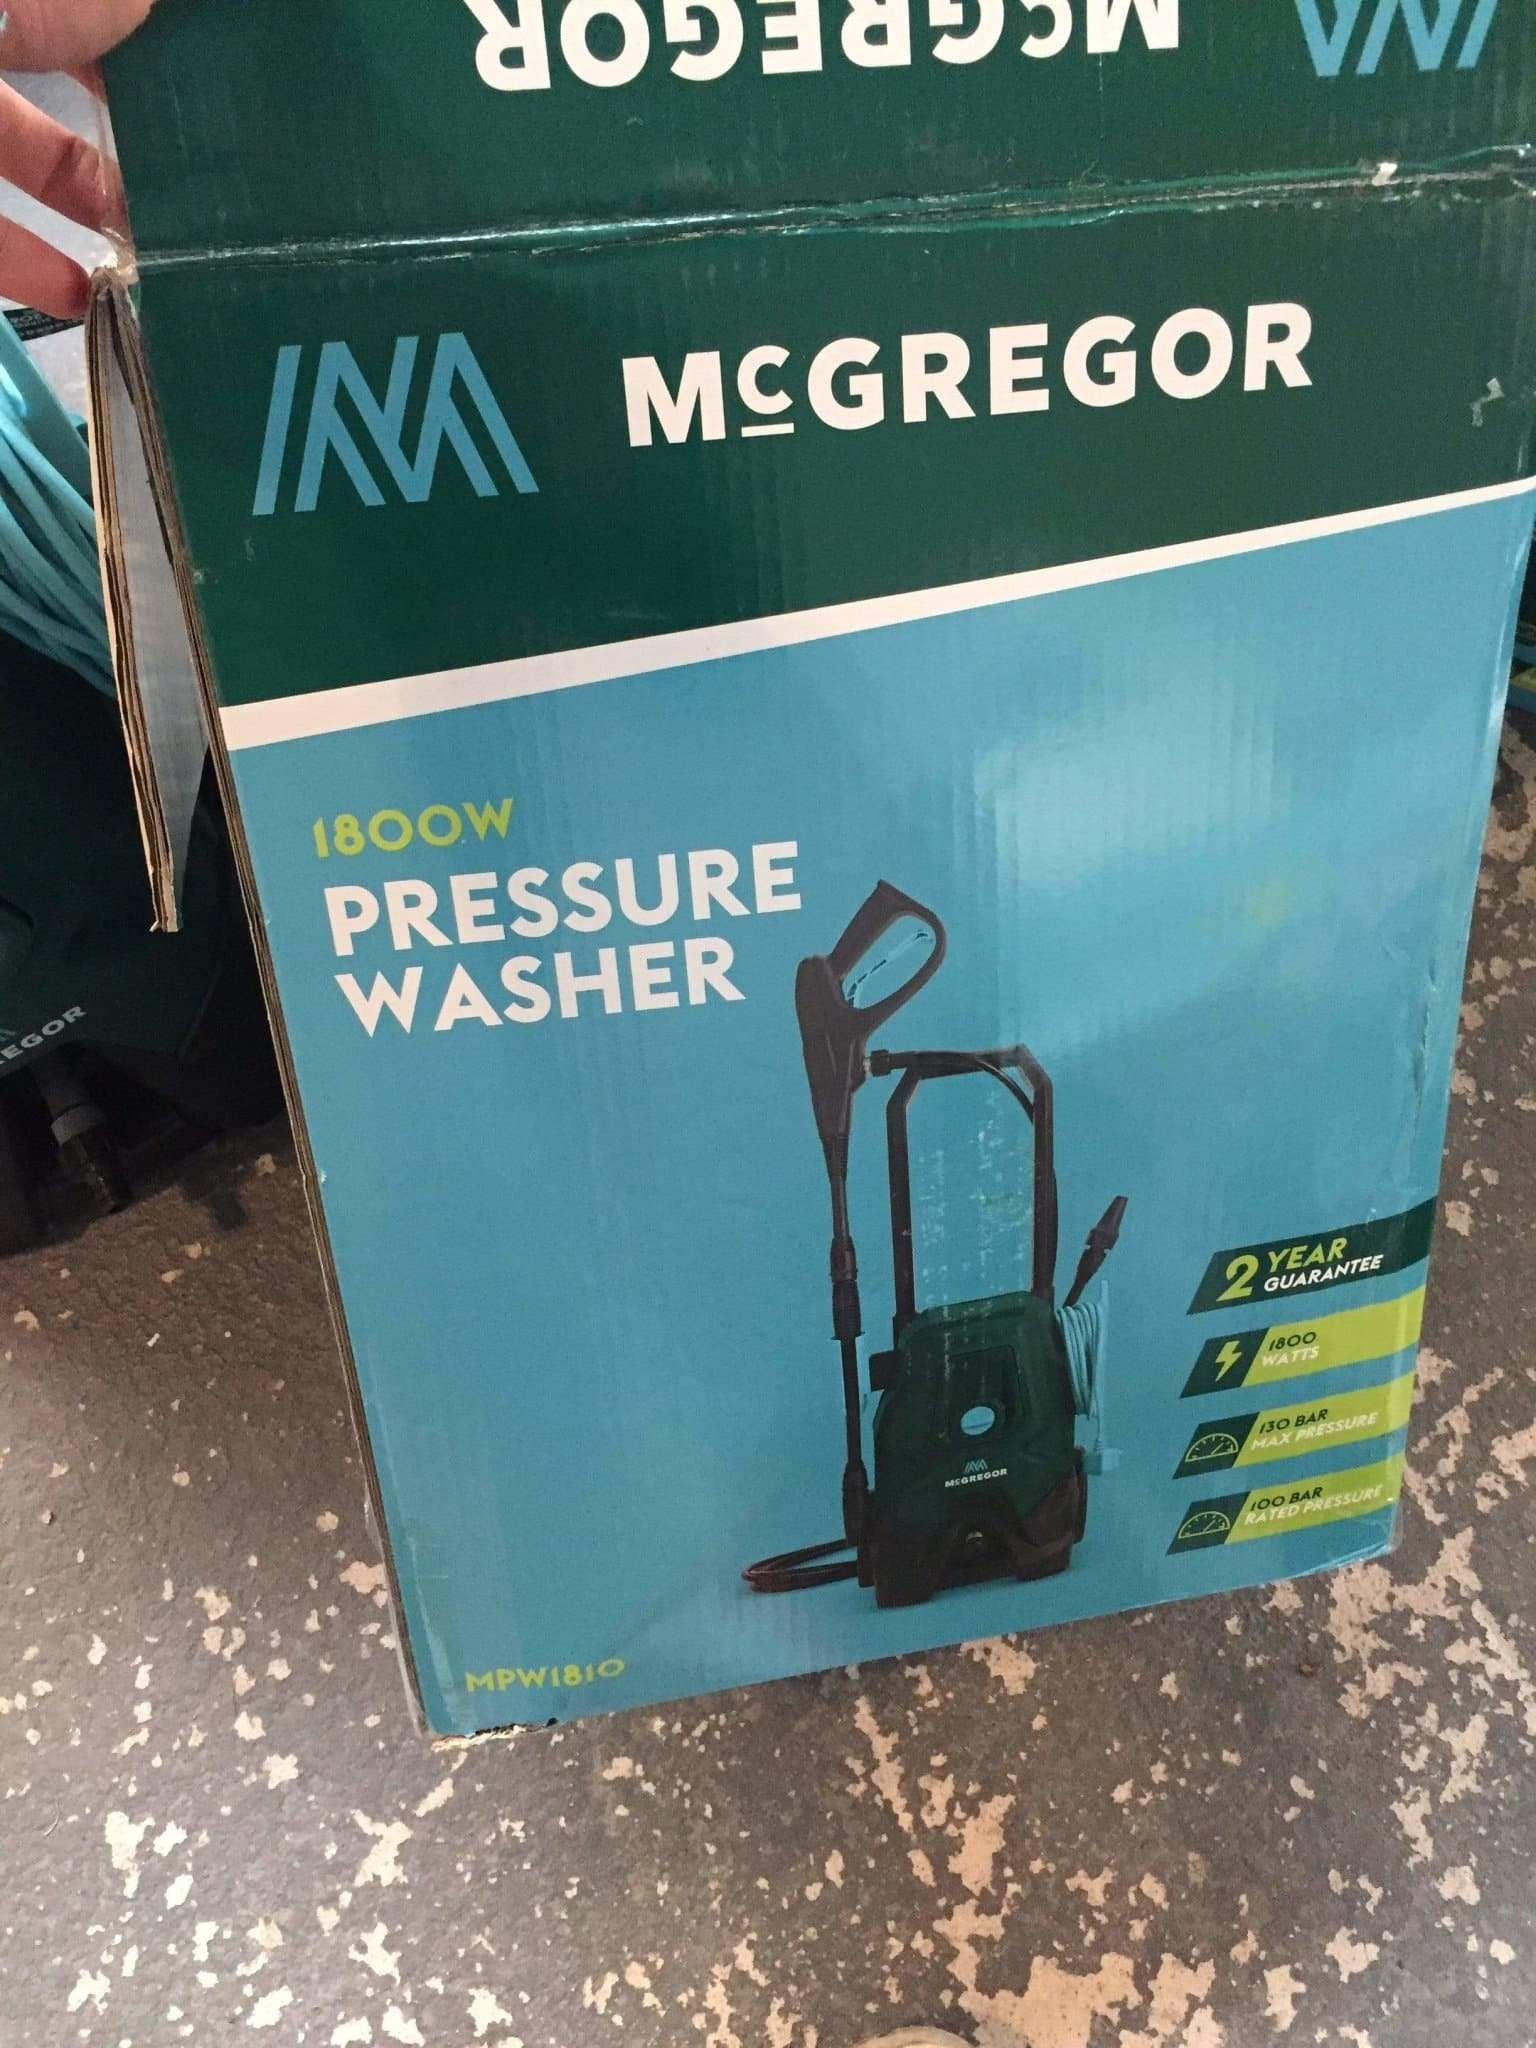 McGregor MPW1810 Pressure Washer - 1800W - 130 BAR - Power Tool DIY - Discounted Deals UK